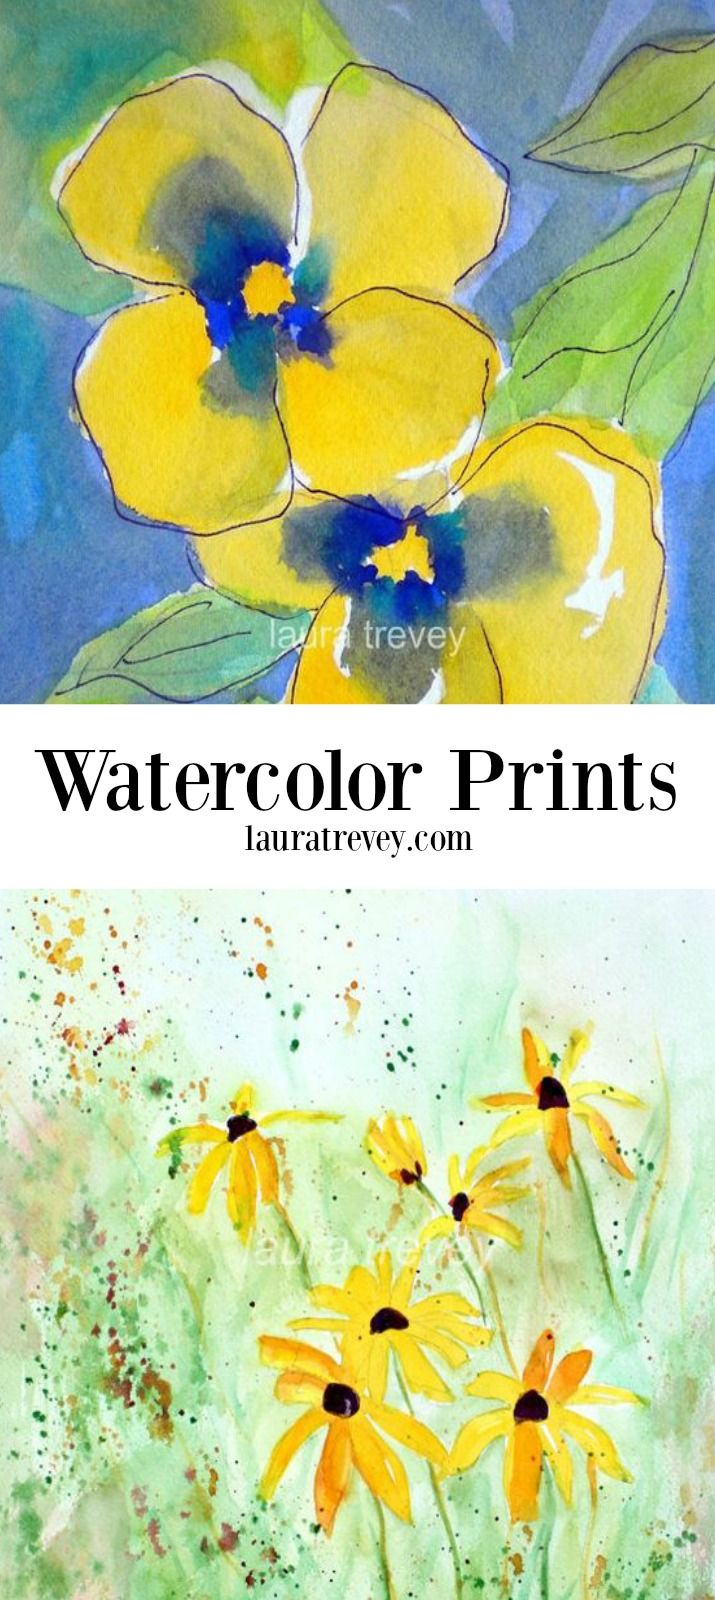 Free illustration watercolor pigment color free image - 15 Art Prints On Sale For Five Dollars Each